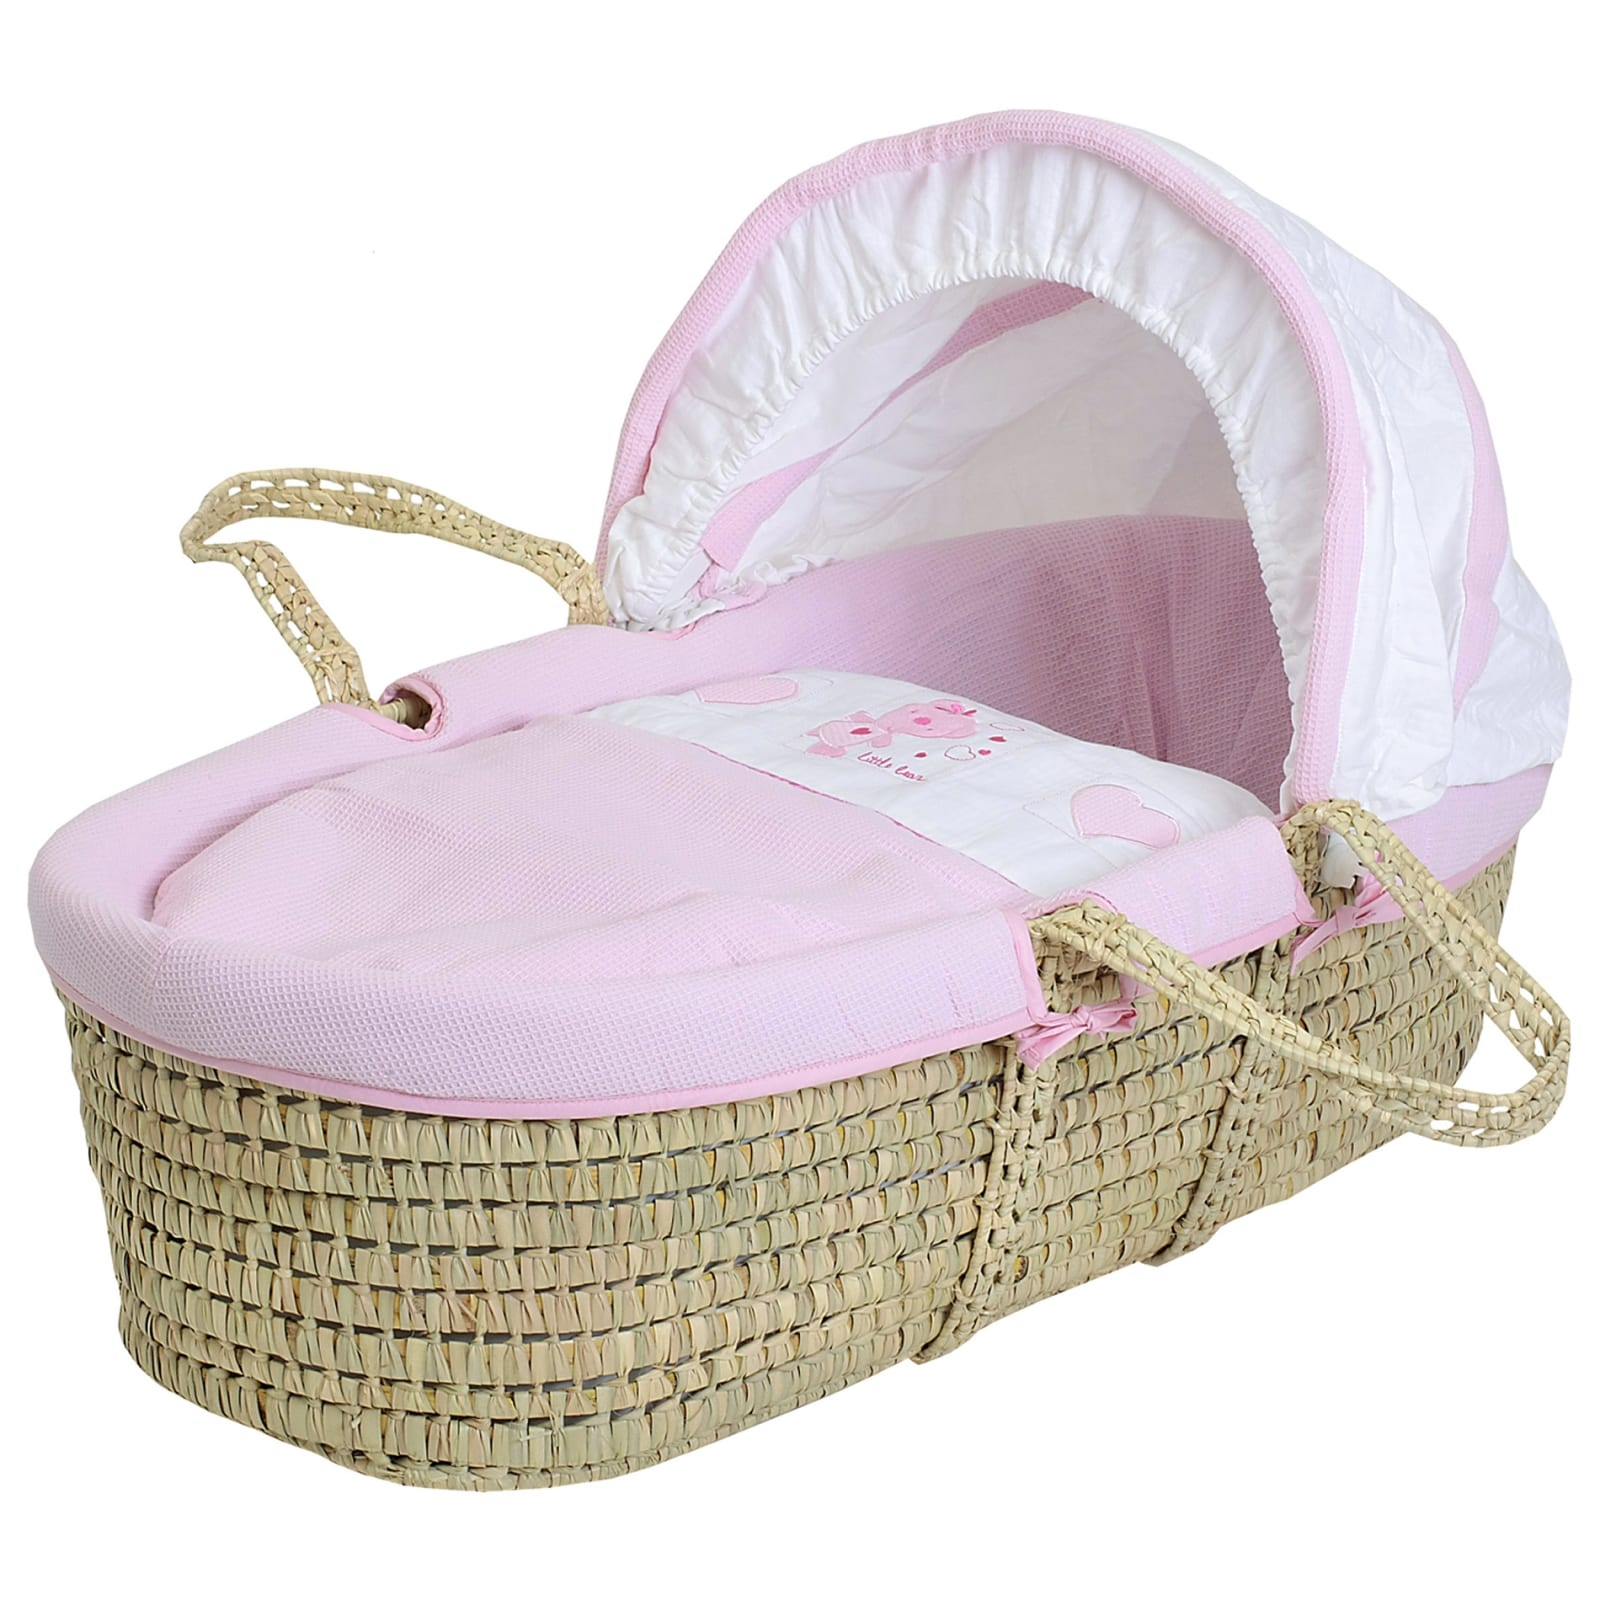 Star Ted Moses Basket – Palm – Pink product image